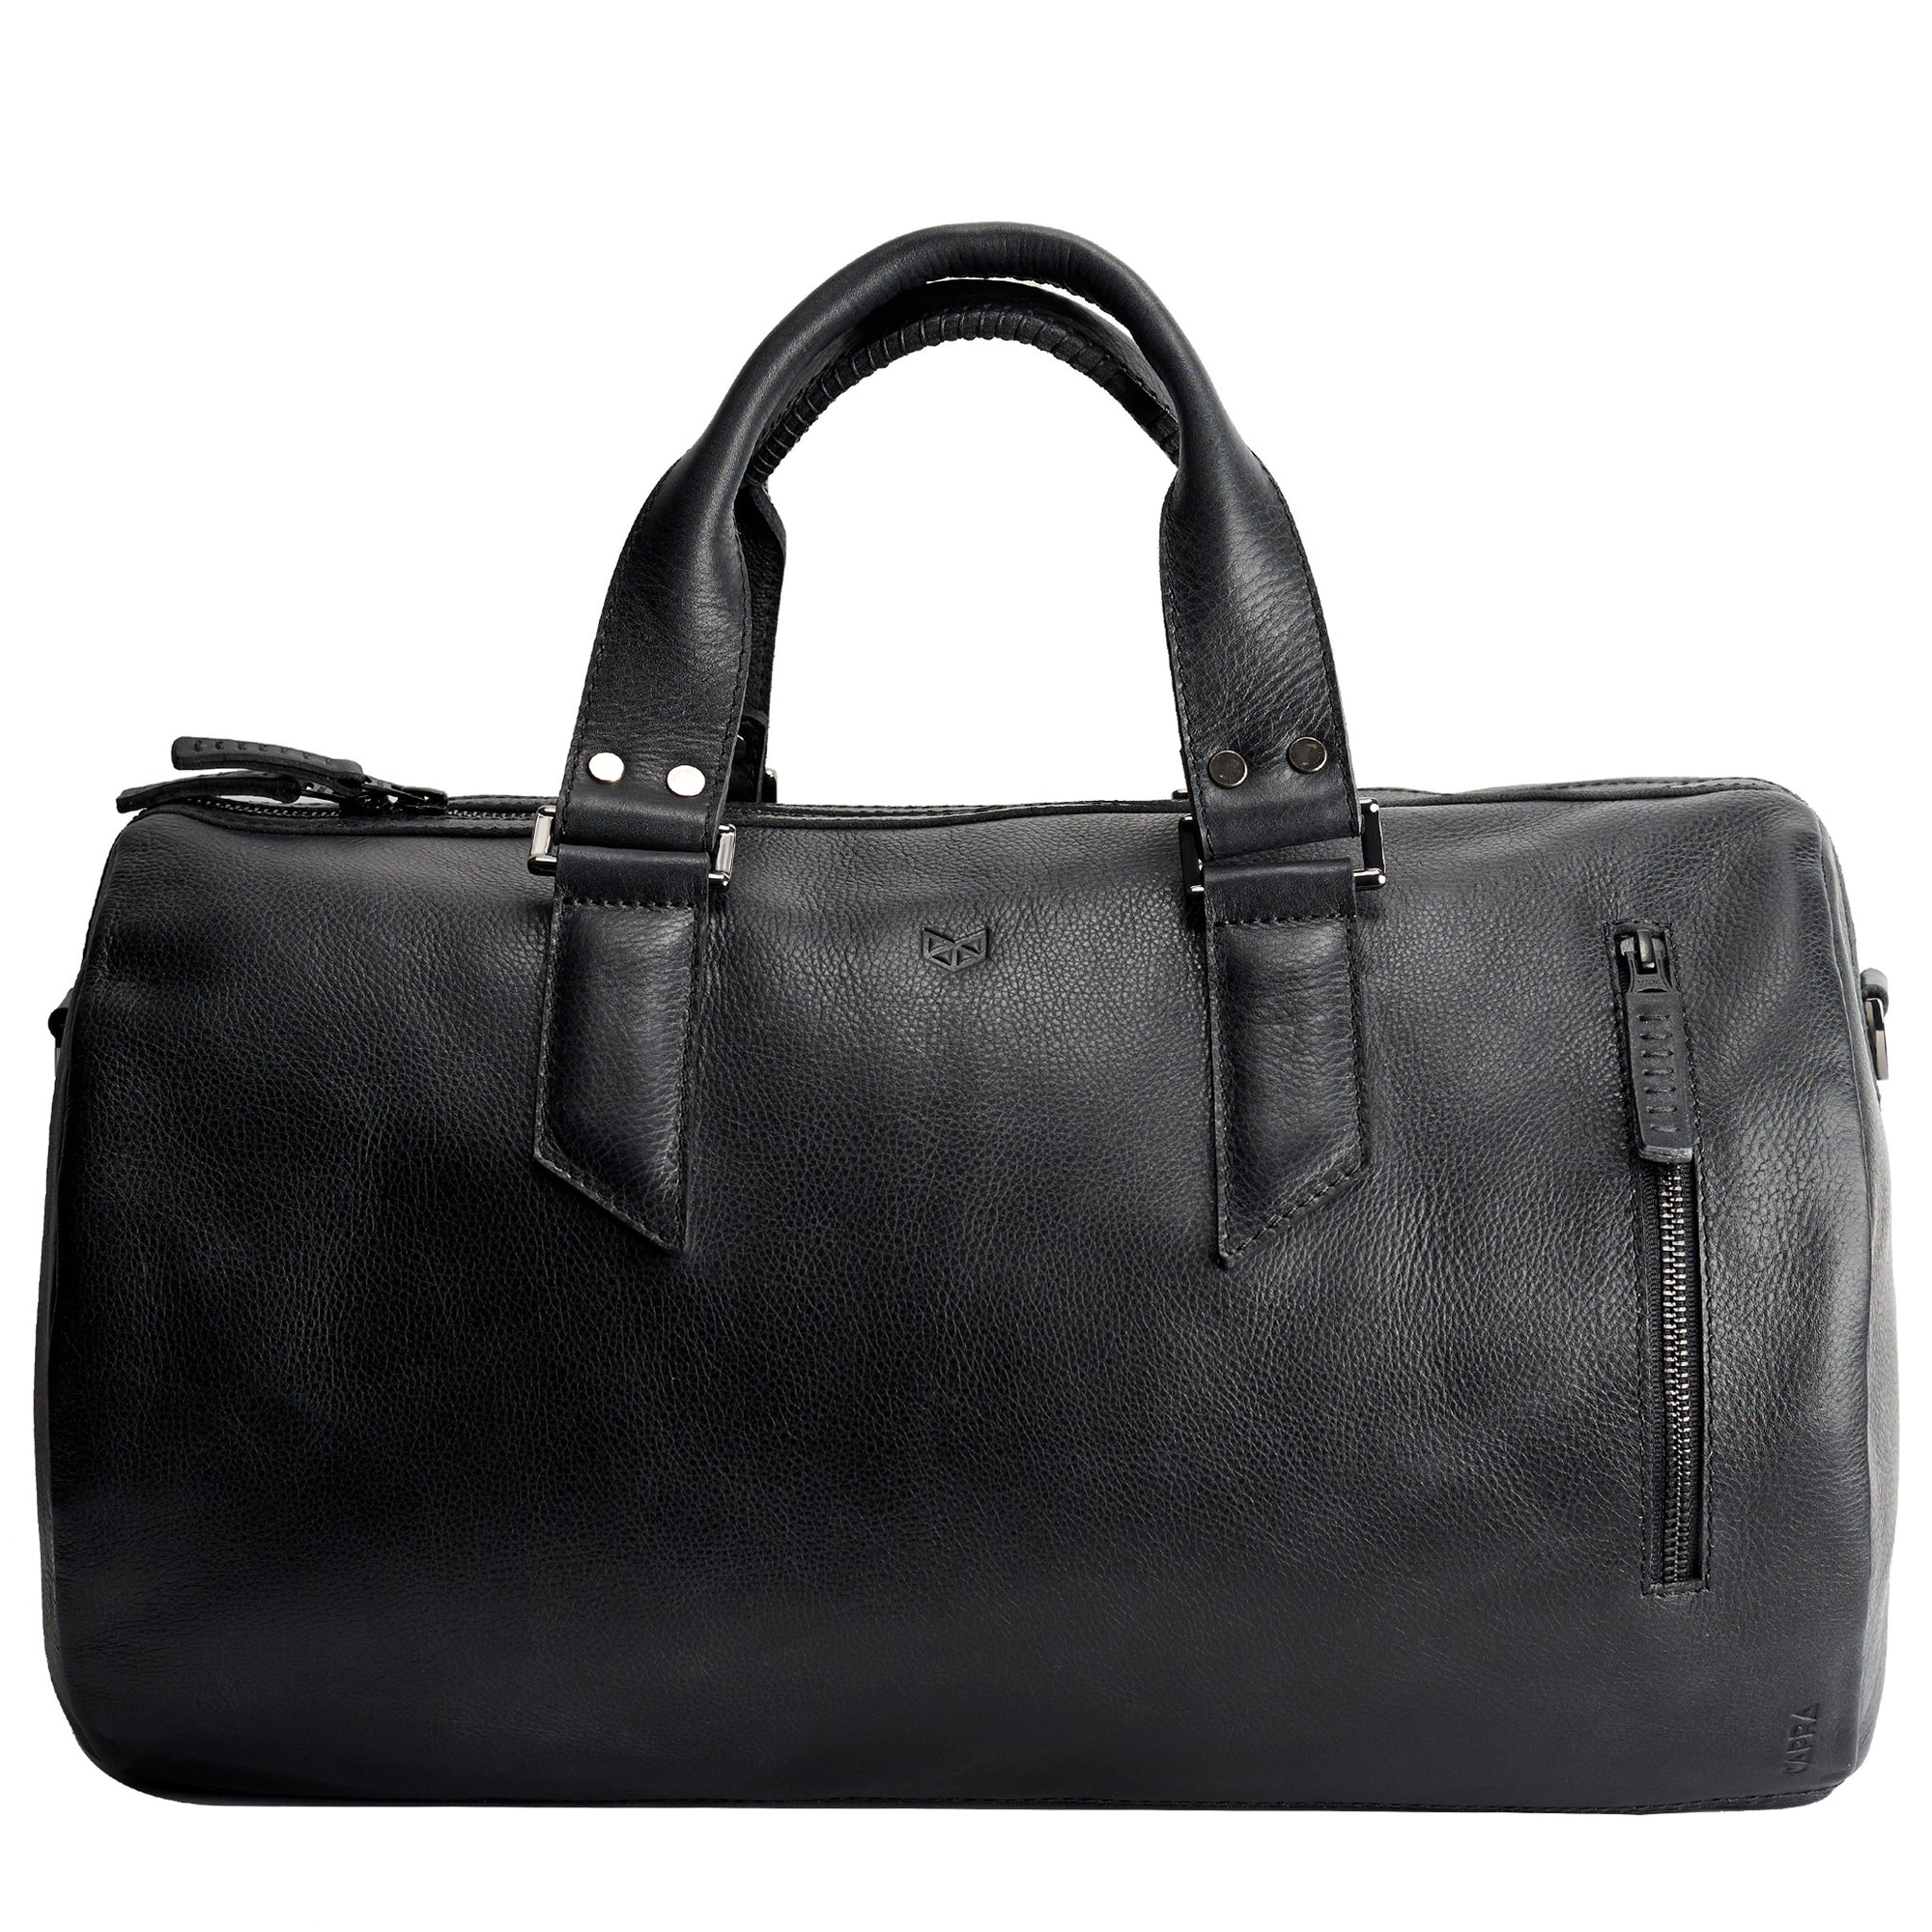 Black Duffle leather travel bag for men. Gym athletic bag. Urban style.  Black designer leather weekender ... f3c27664036fe